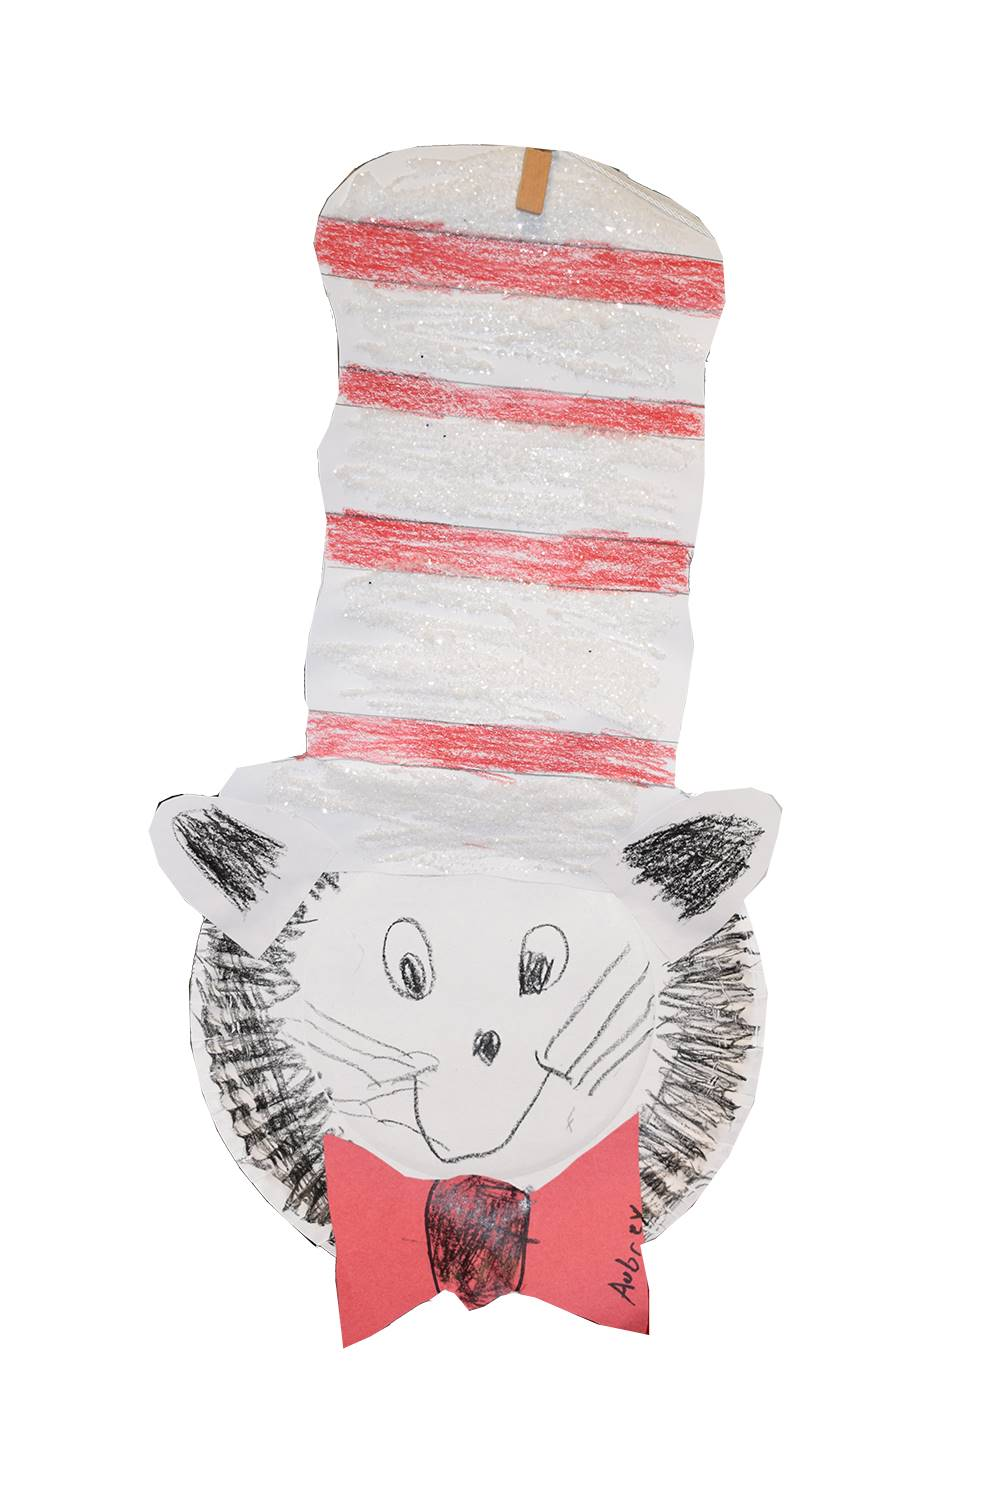 Cat in the Hat constructed out of a white paper plate, construction paper and crayons.